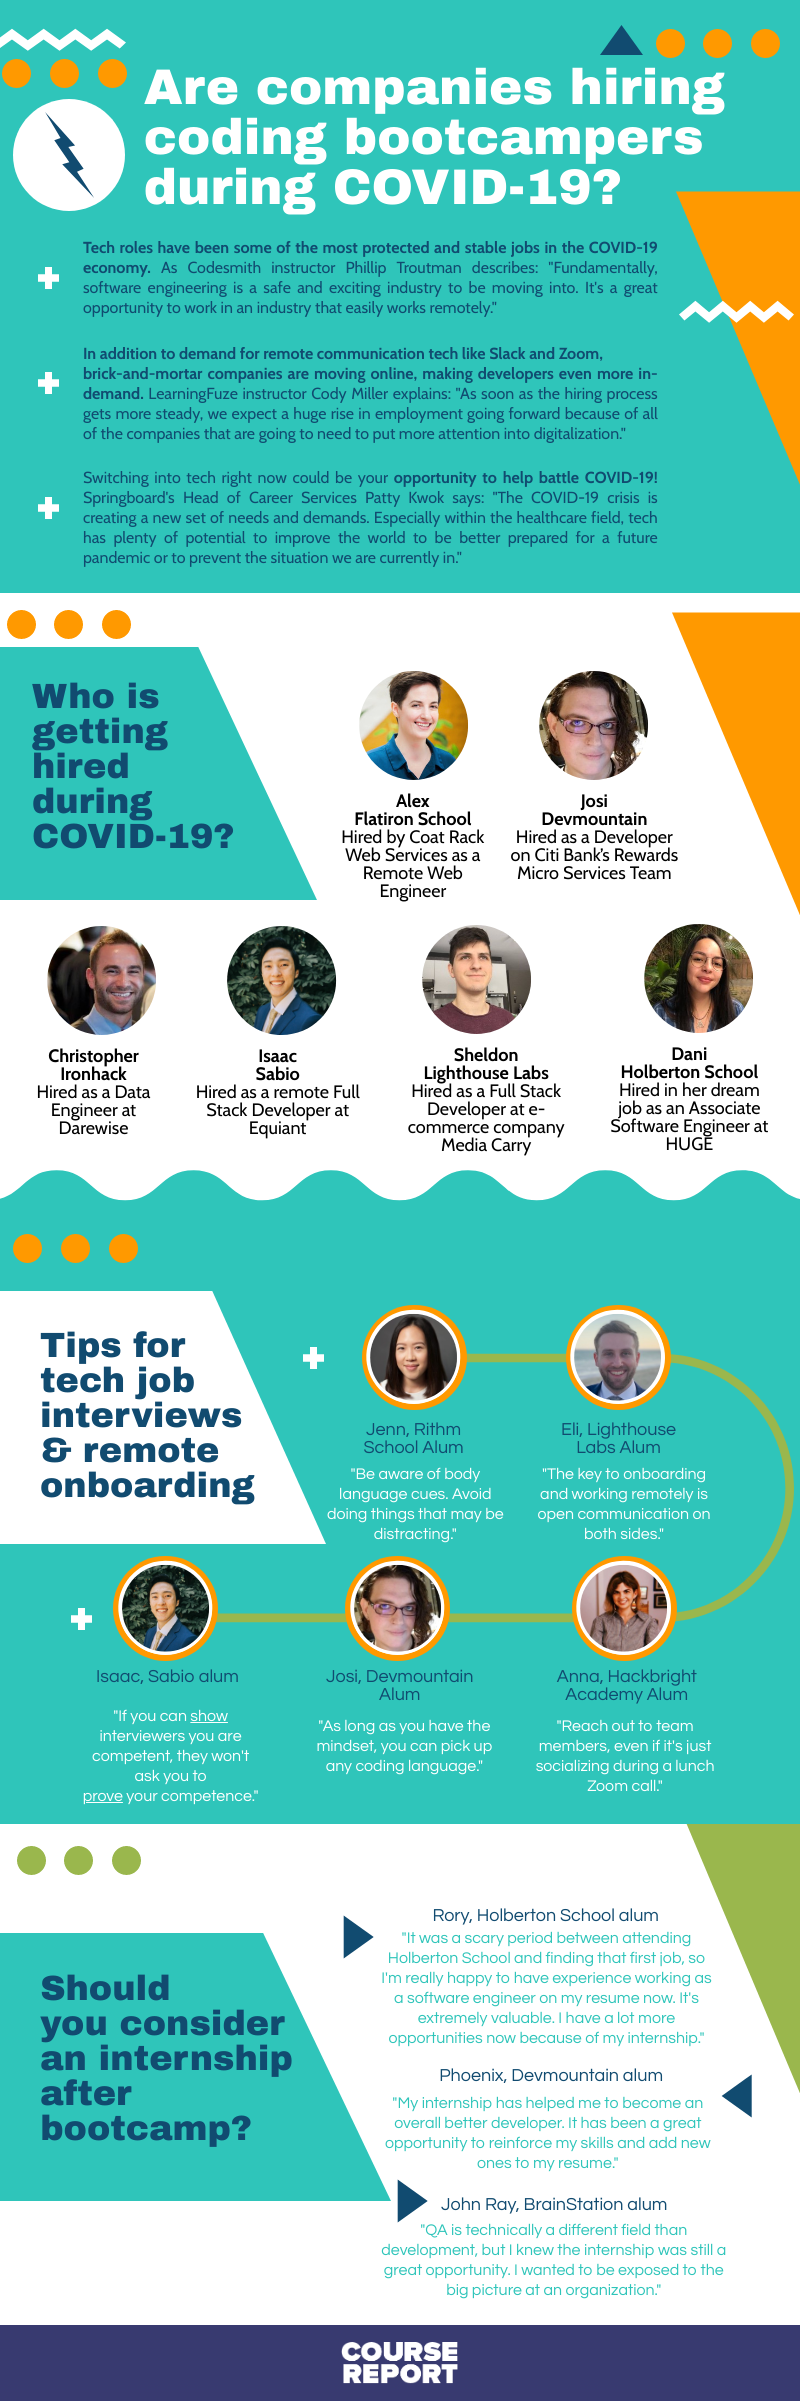 Are tech companies hiring coding bootcampers during COVID? infographic